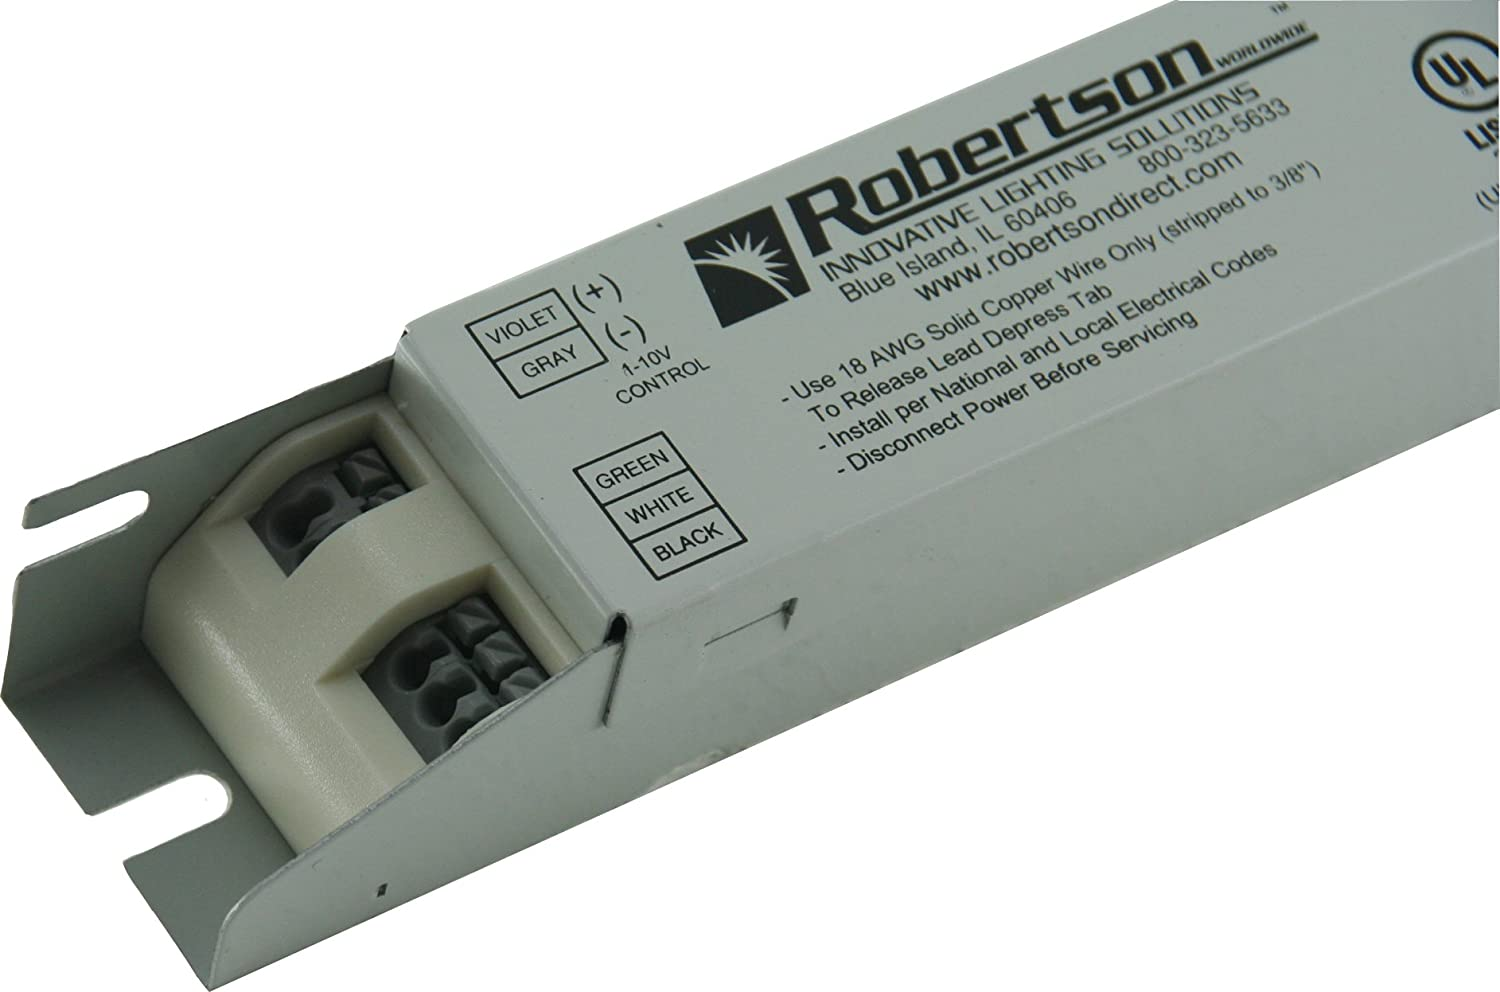 ROBERTSON 3P20073 PST128T5IVCD /A Fluorescent Dimming eBallast for 1 F28T5 Linear L& Program Start 100-277Vac 50-60Hz 0-10V Dimming Normal Ballast ...  sc 1 st  Amazon.com & ROBERTSON 3P20073 PST128T5IVCD /A Fluorescent Dimming eBallast for 1 ...